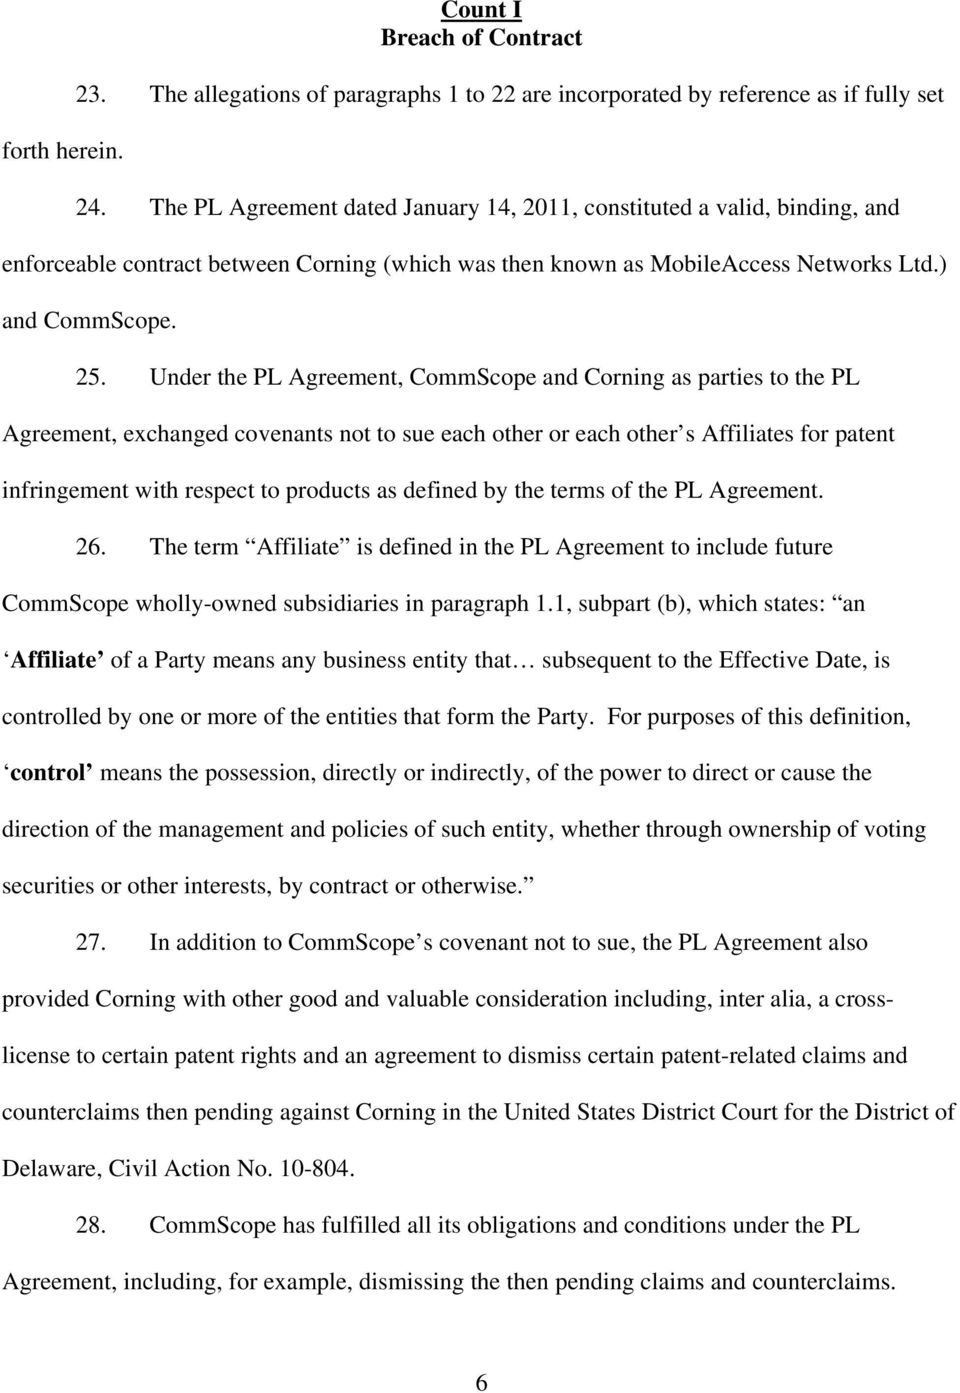 Under the PL Agreement, CommScope and Corning as parties to the PL Agreement, exchanged covenants not to sue each other or each other s Affiliates for patent infringement with respect to products as